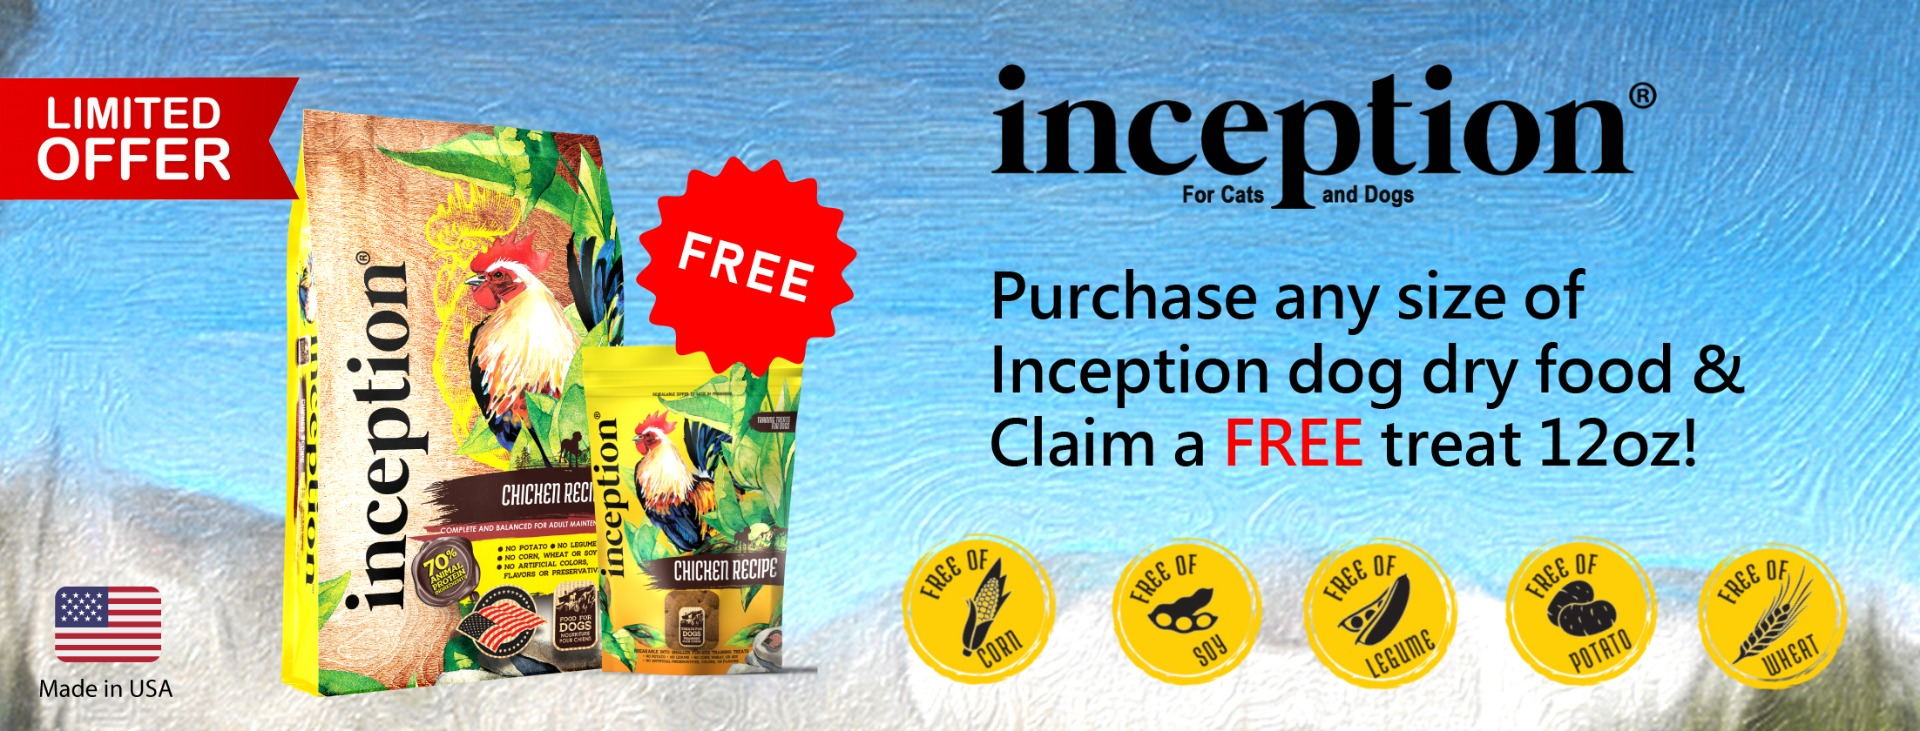 Free Inception Dog Treat